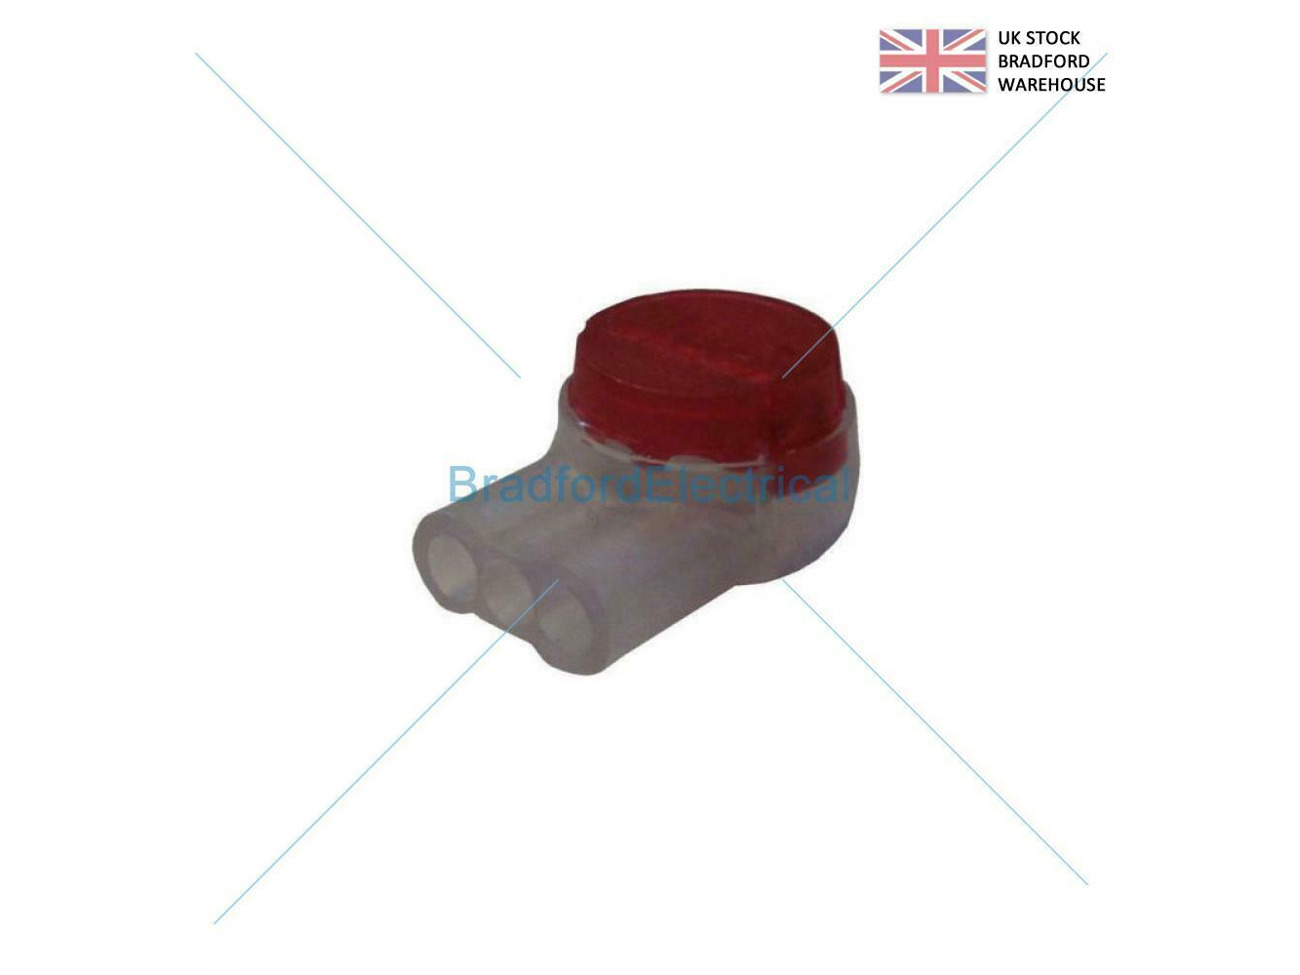 100 X 2 WIRE TELEPHONE JELLY CRIMPS 8A TELECOM CONNECTOR As Used by BT Virgin